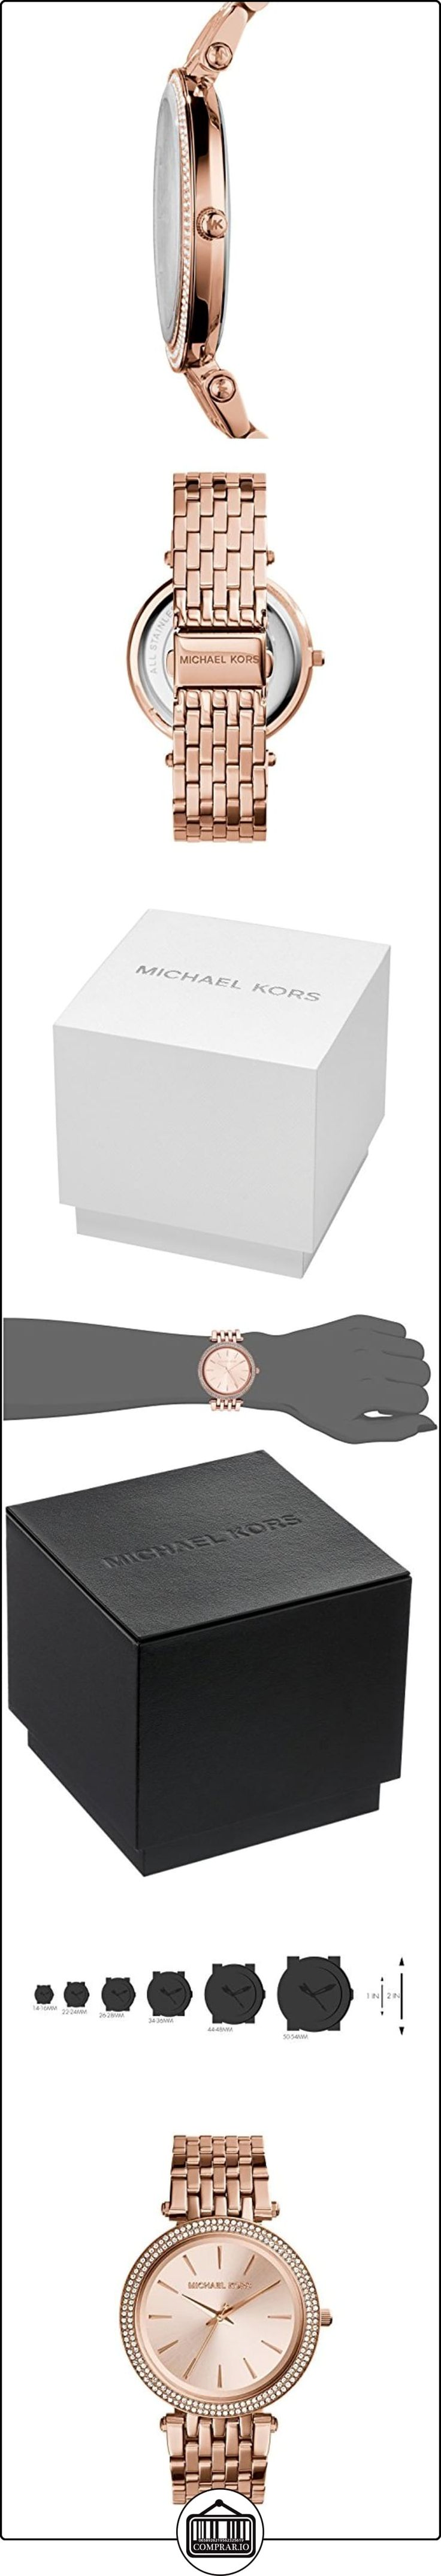 Michael Kors MK3192 Ladies All Rose Gold Watch  ✿ Relojes para mujer - (Gama media/alta) ✿